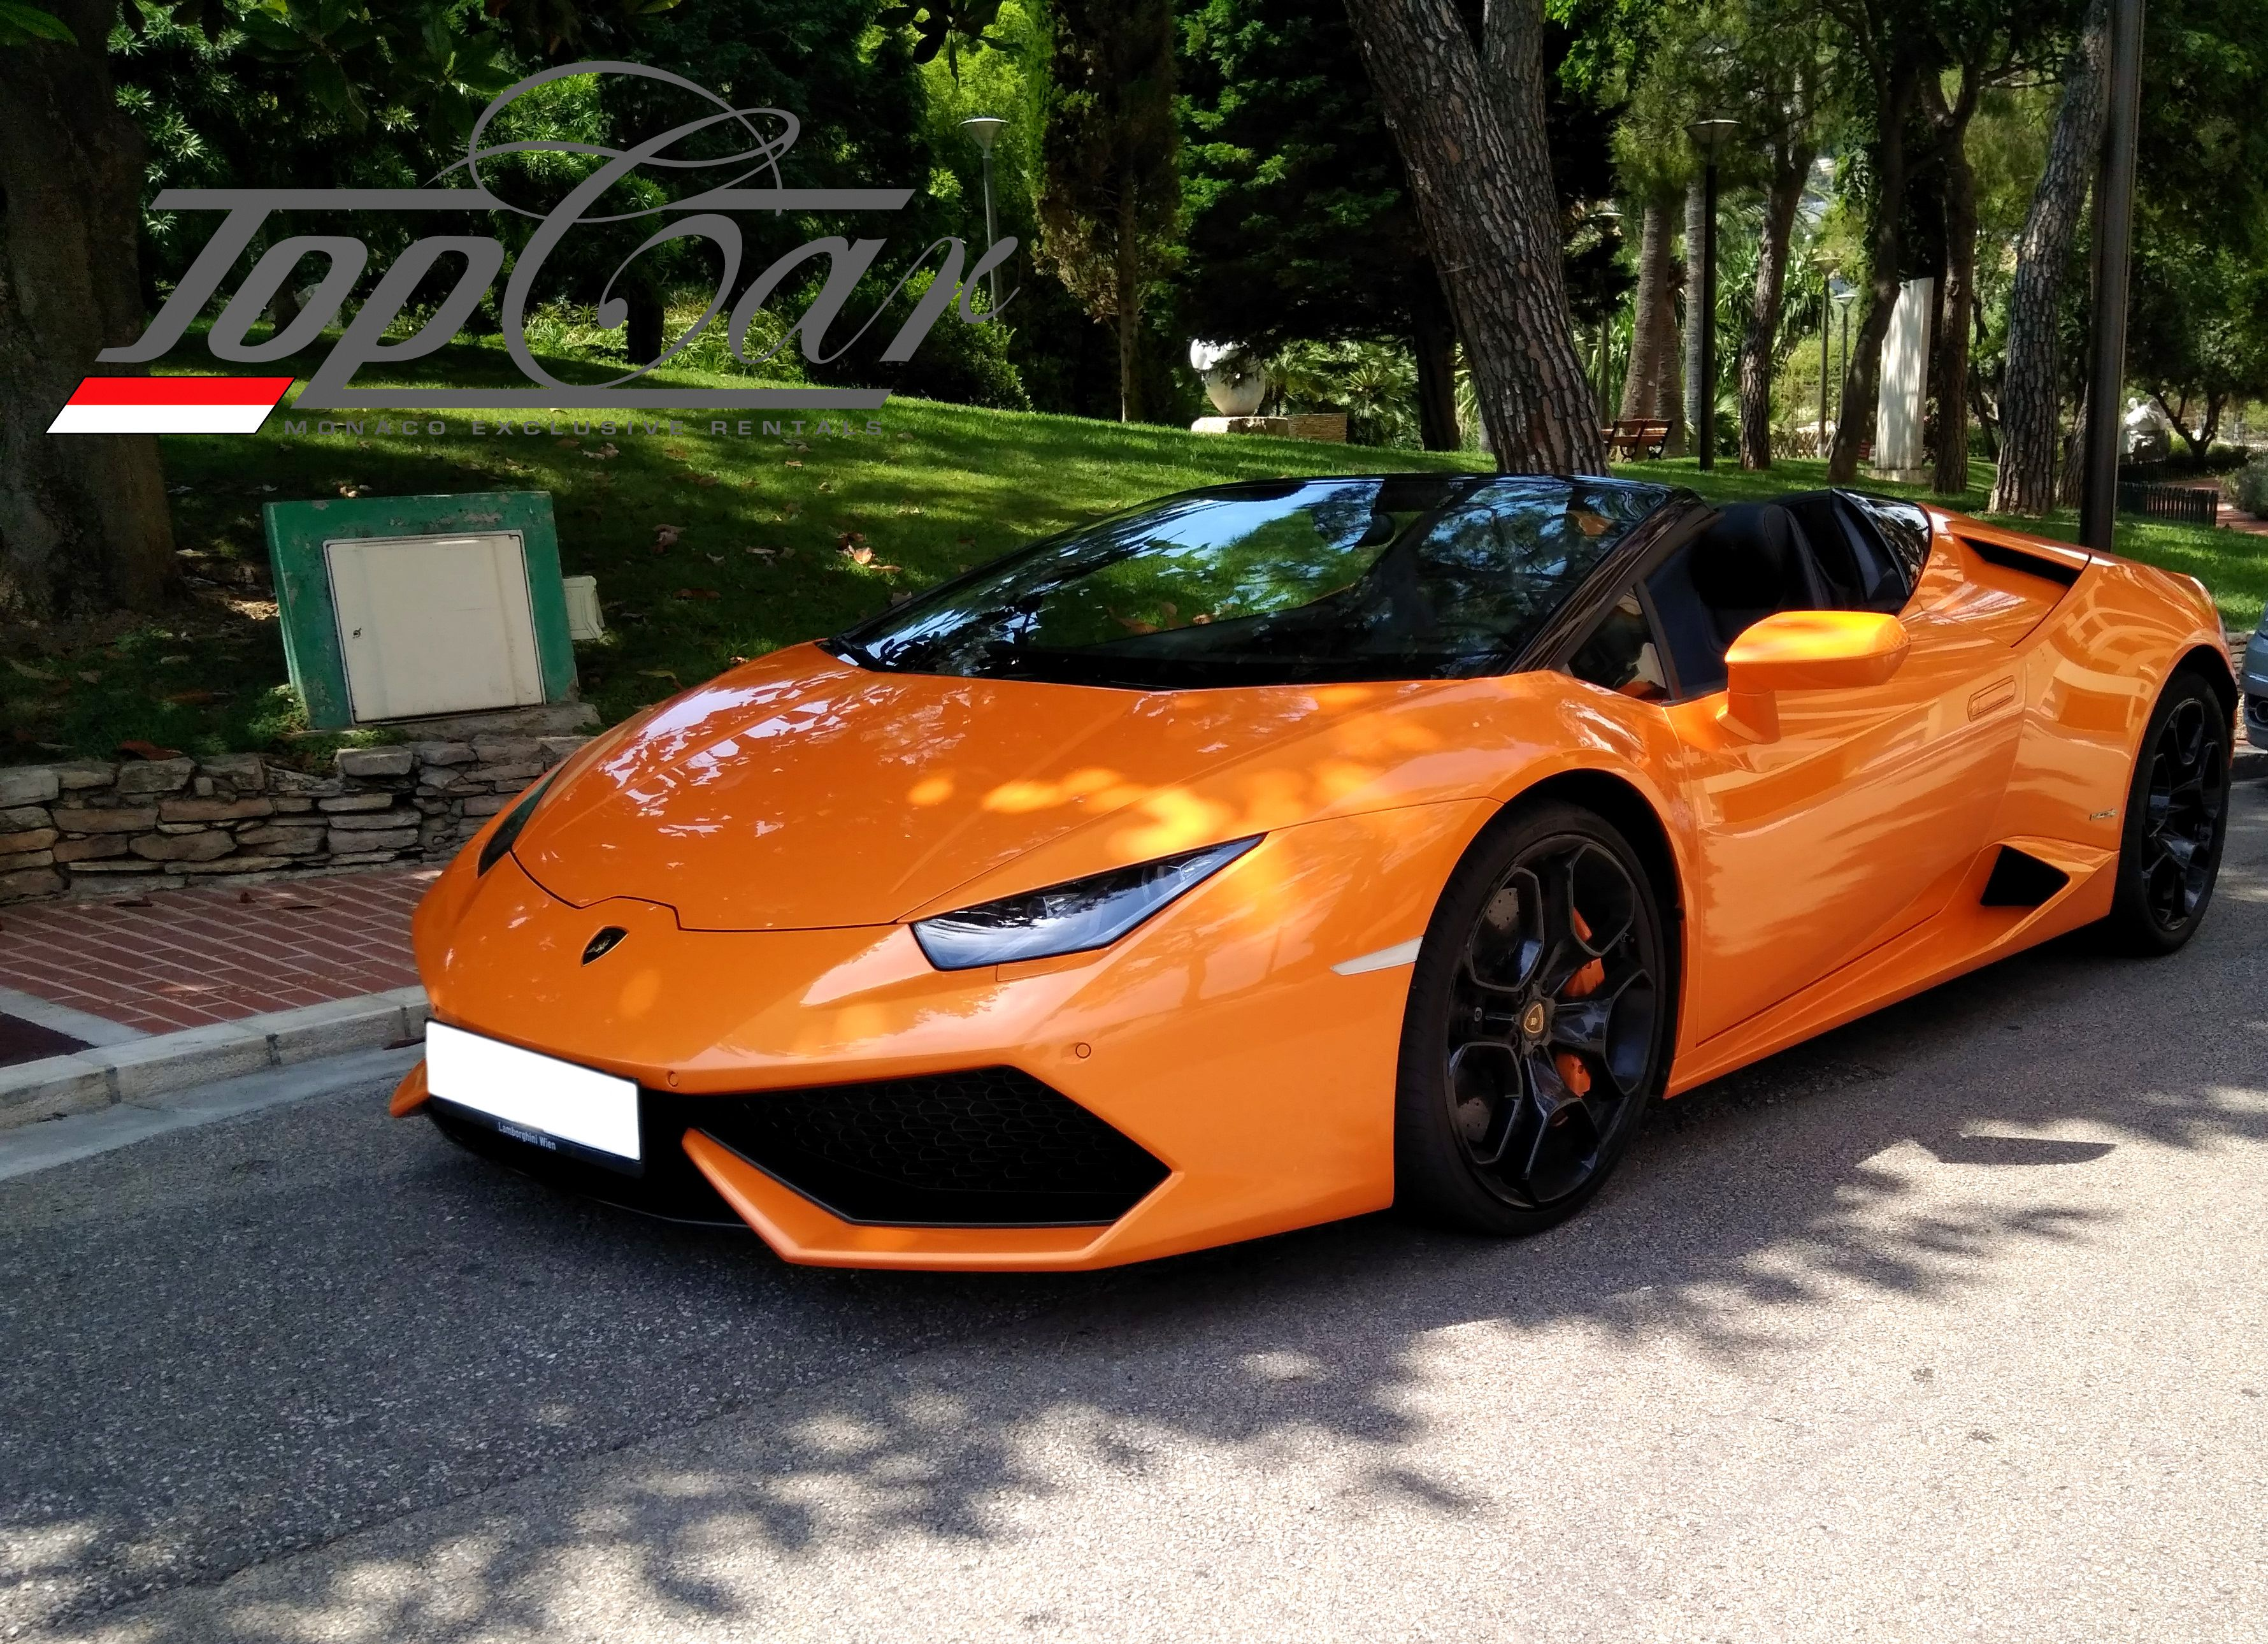 Lamborghini Huracan Lp 610 4 Spider Available For Rent In Cannes Nice Saint Tropez And Monte Carlo Contact Top Car Monaco For Rent A Supercar Www Topcarm